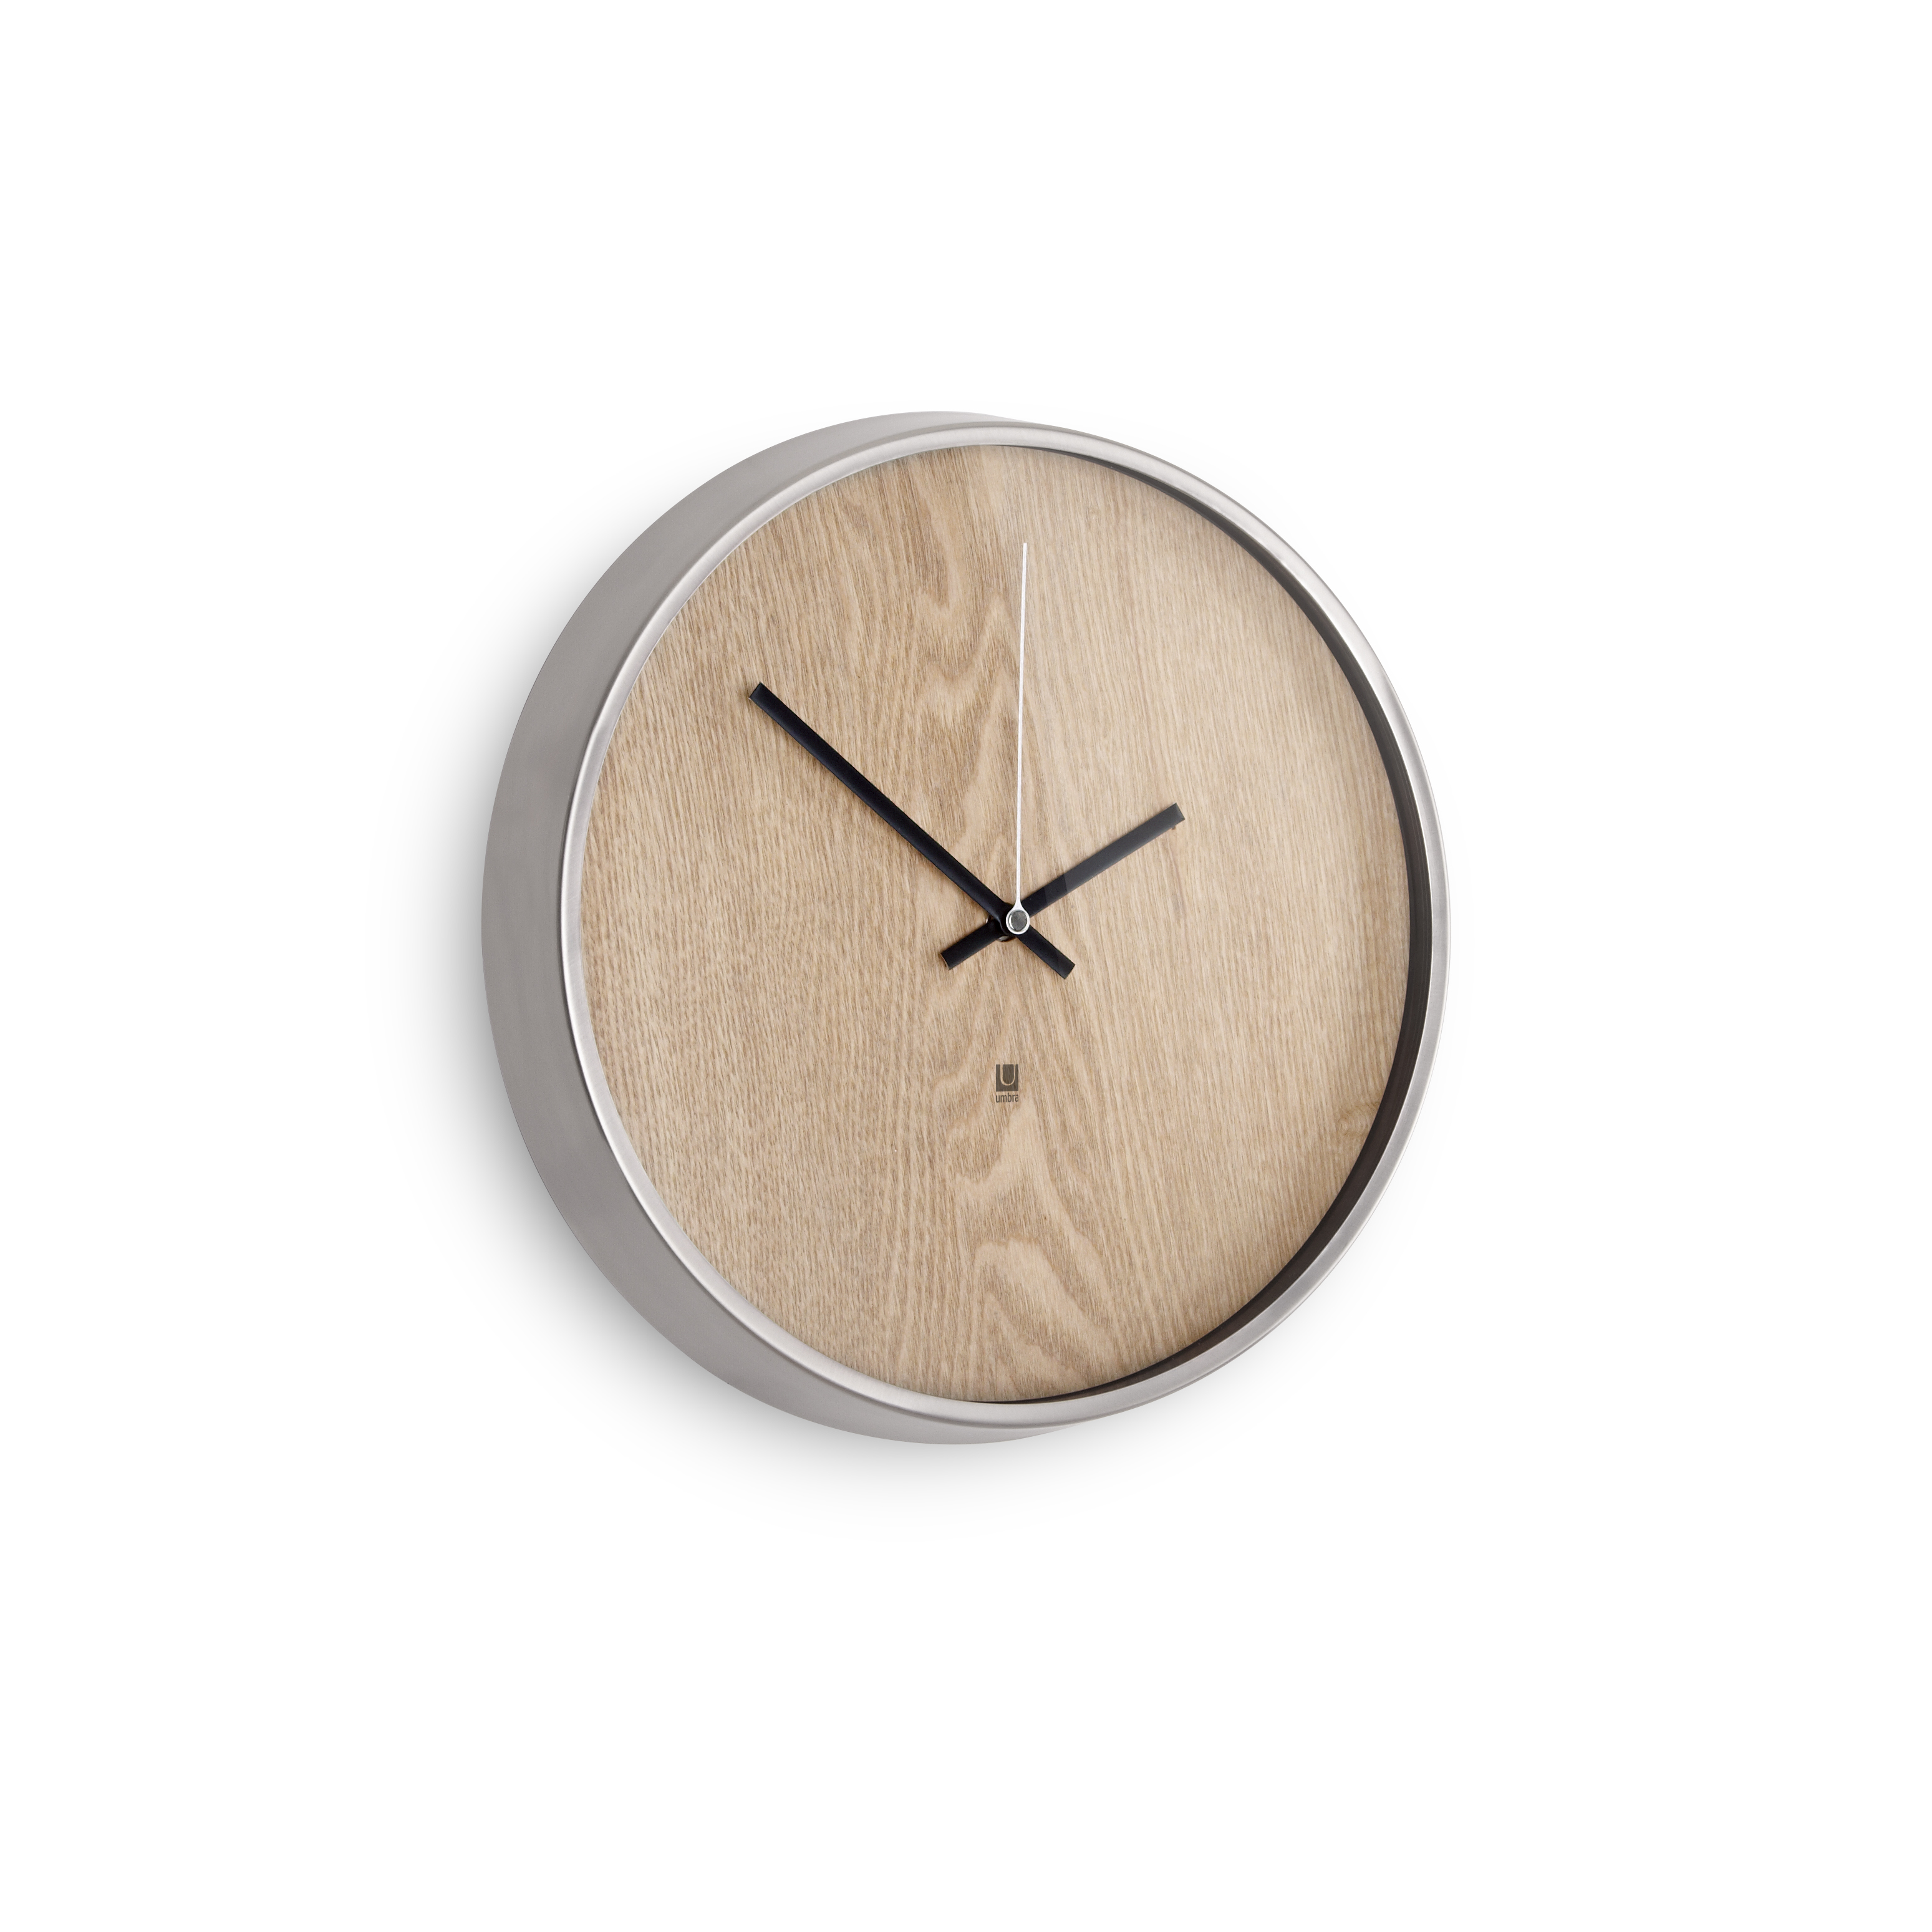 design essentials madera wall clock in natural with nickel rim